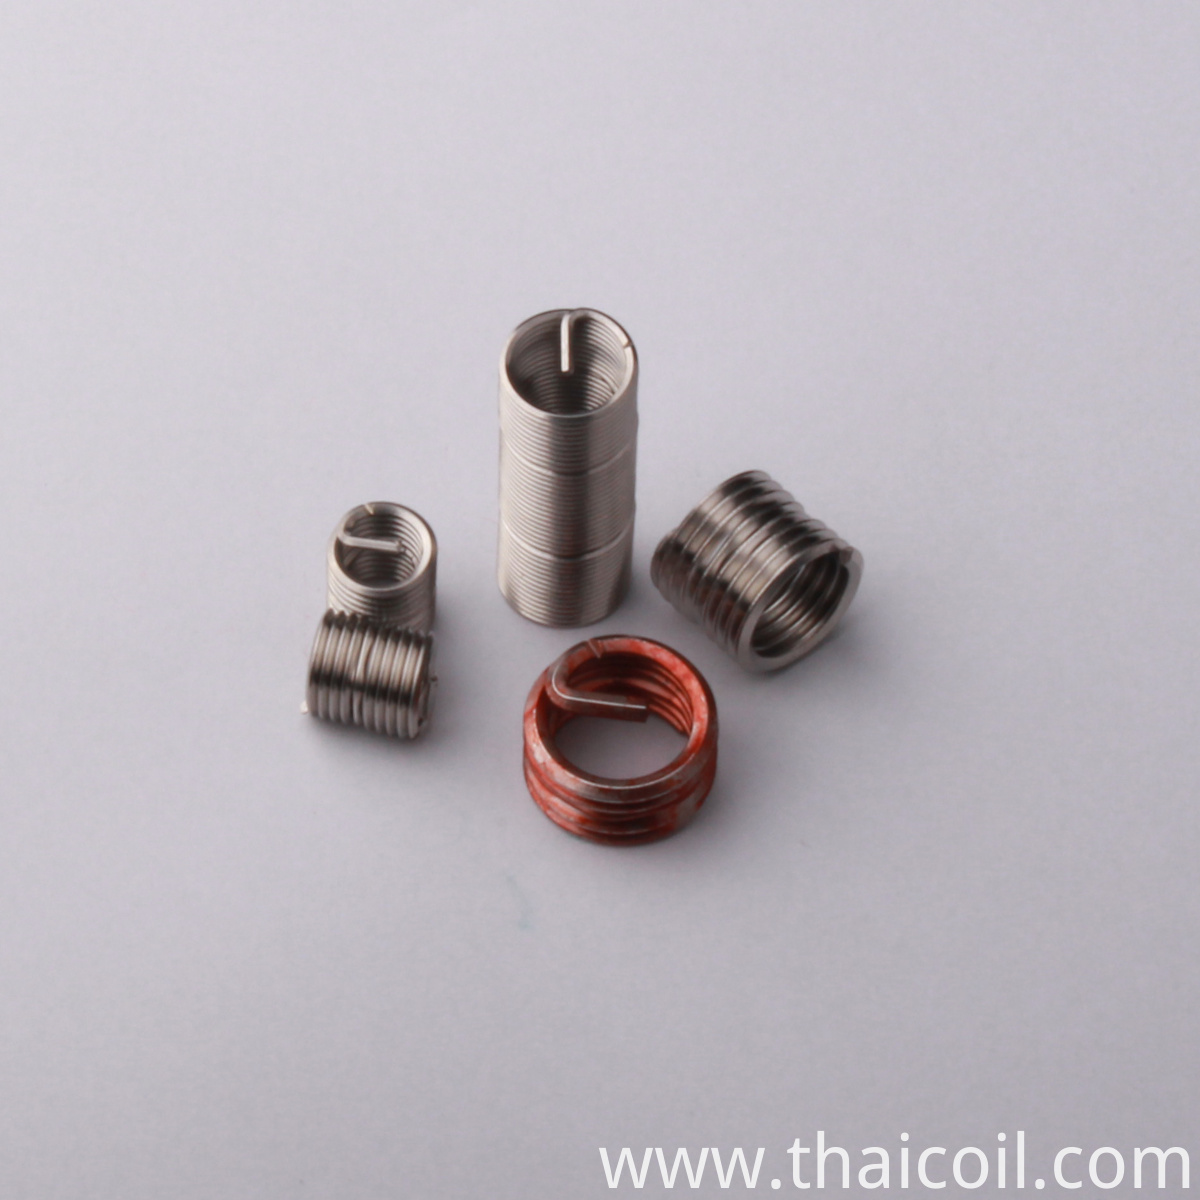 Wire Thread Insert for Repairing